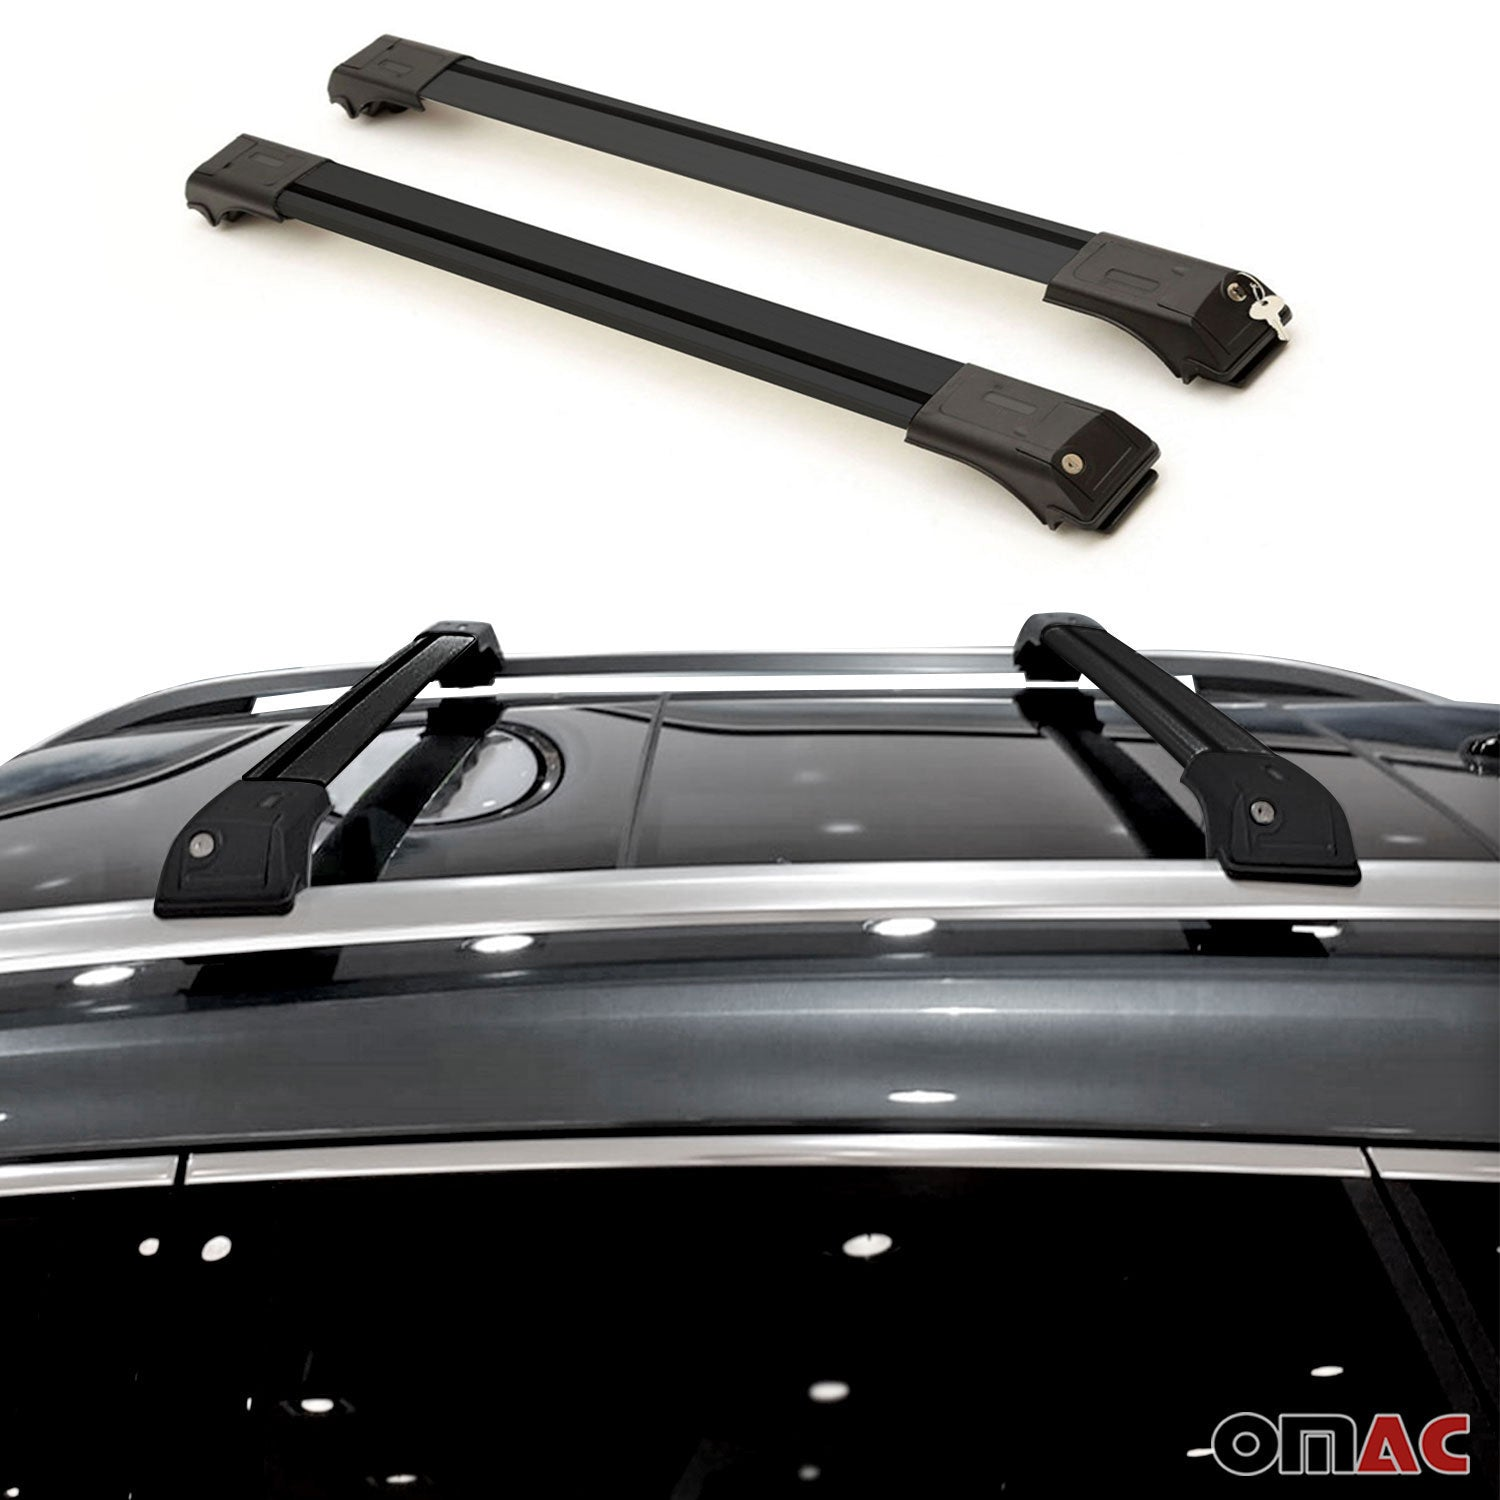 Roof Rack Cross Bars Luggage Carrier Black Set for Mercedes E Class S210 1998-03